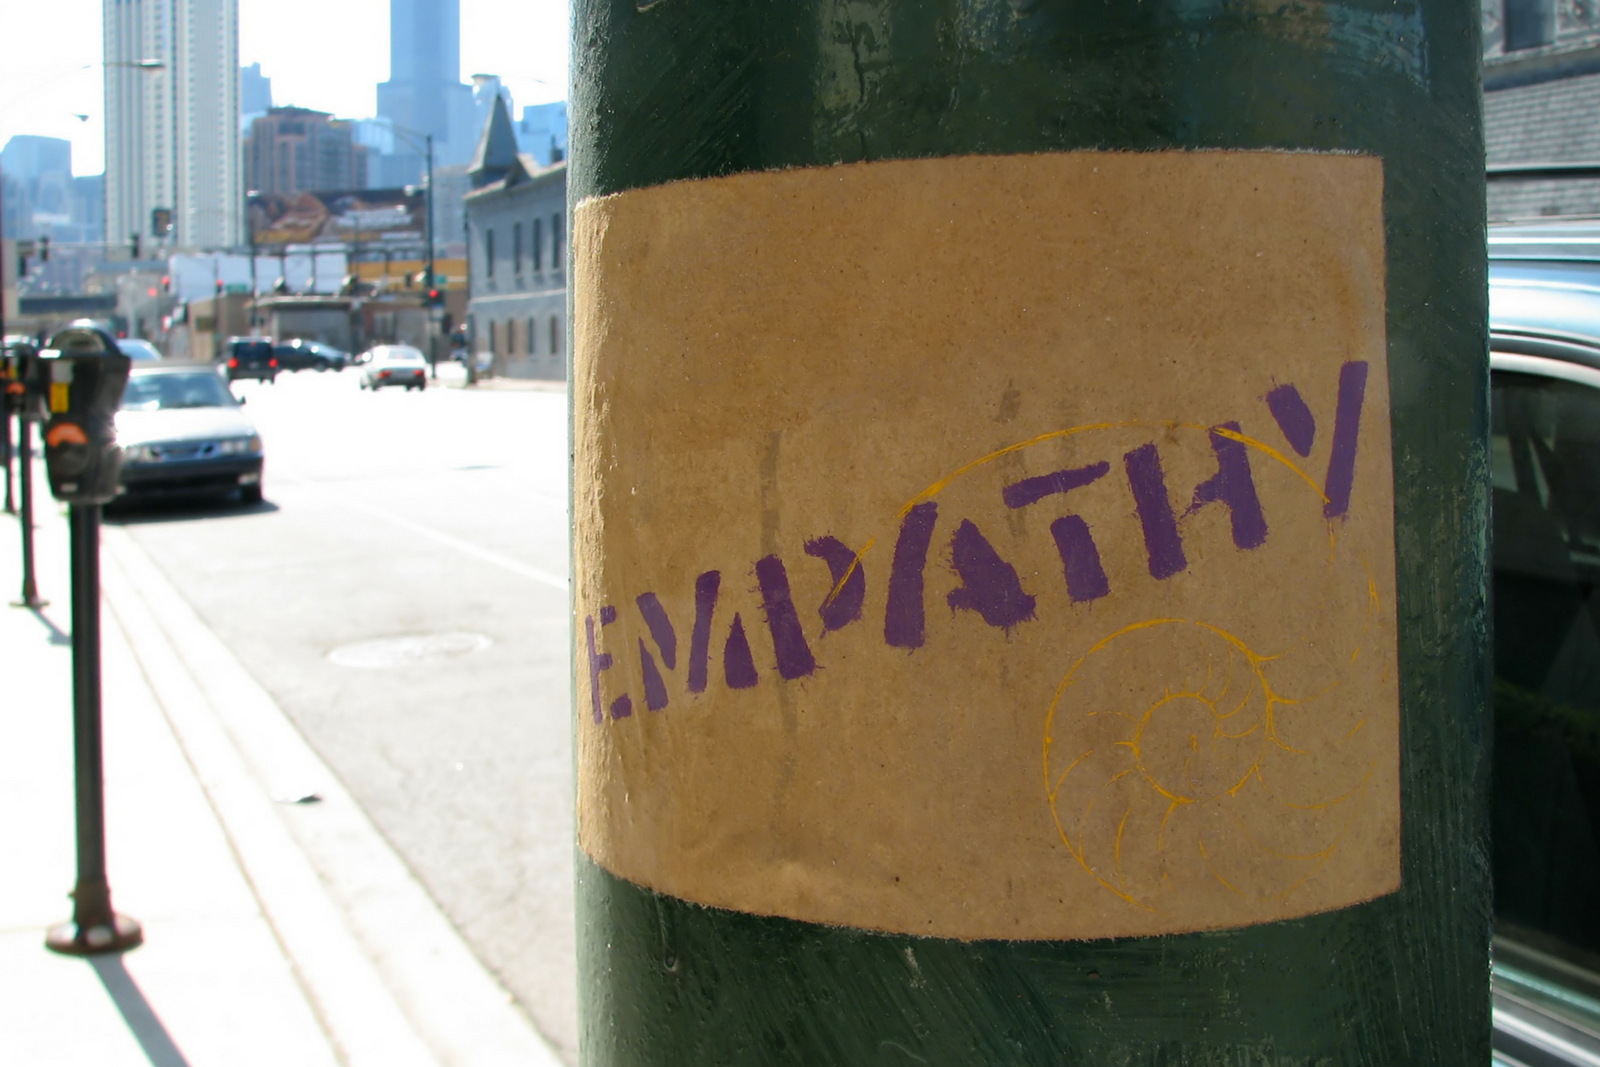 Empathy is the Antidote: Empowering Upstanders through Practice